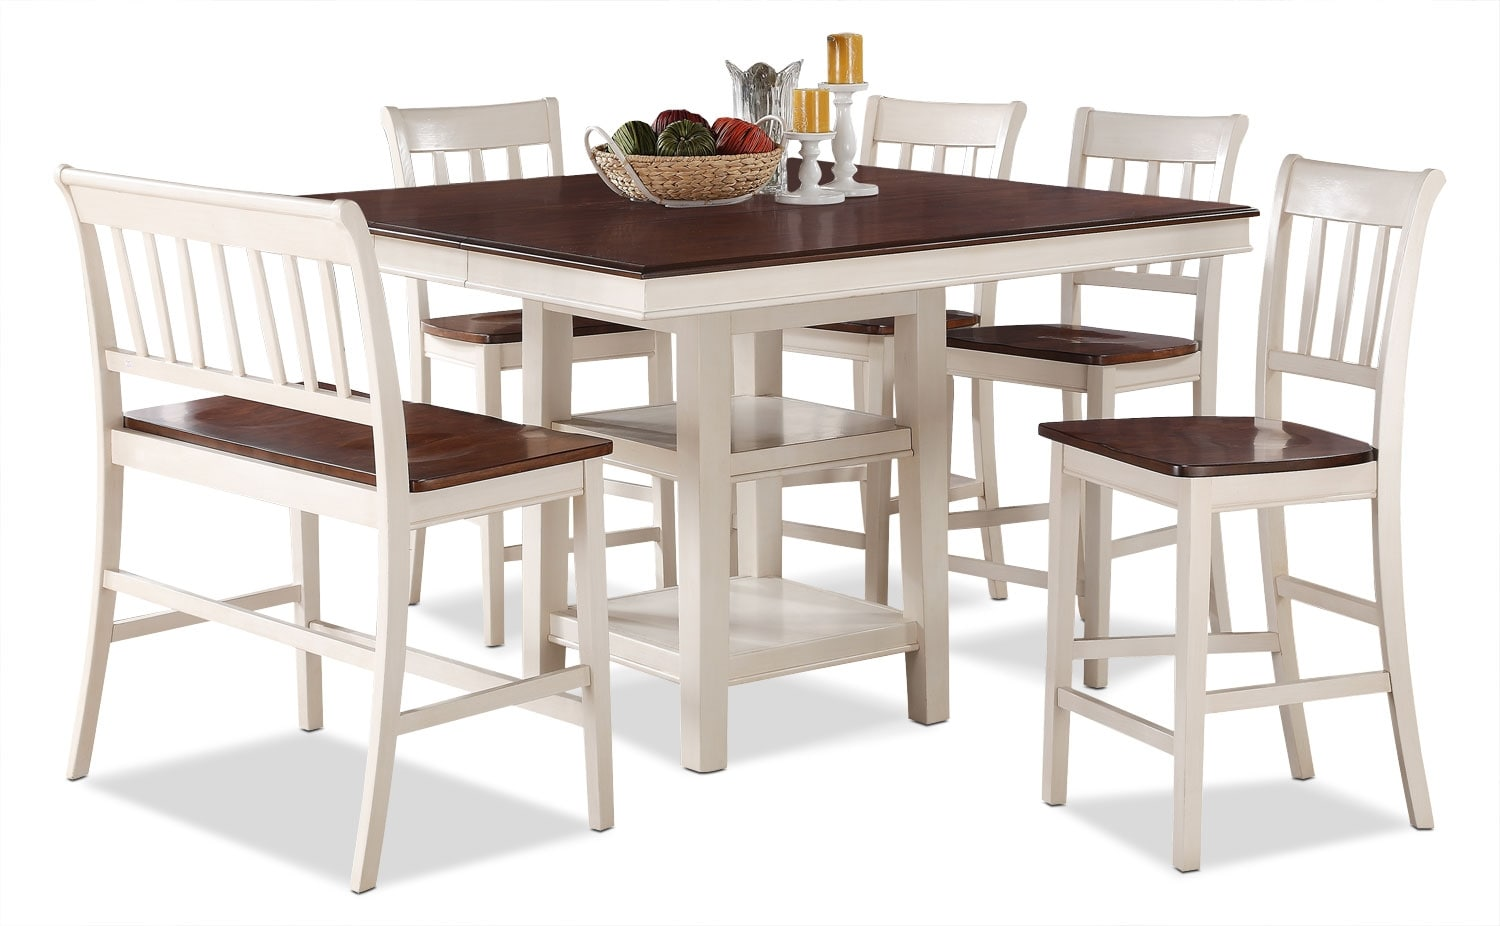 Dining Room Furniture - Nyla 6-Piece Counter-Height Dining Package – Antique White and Cherry